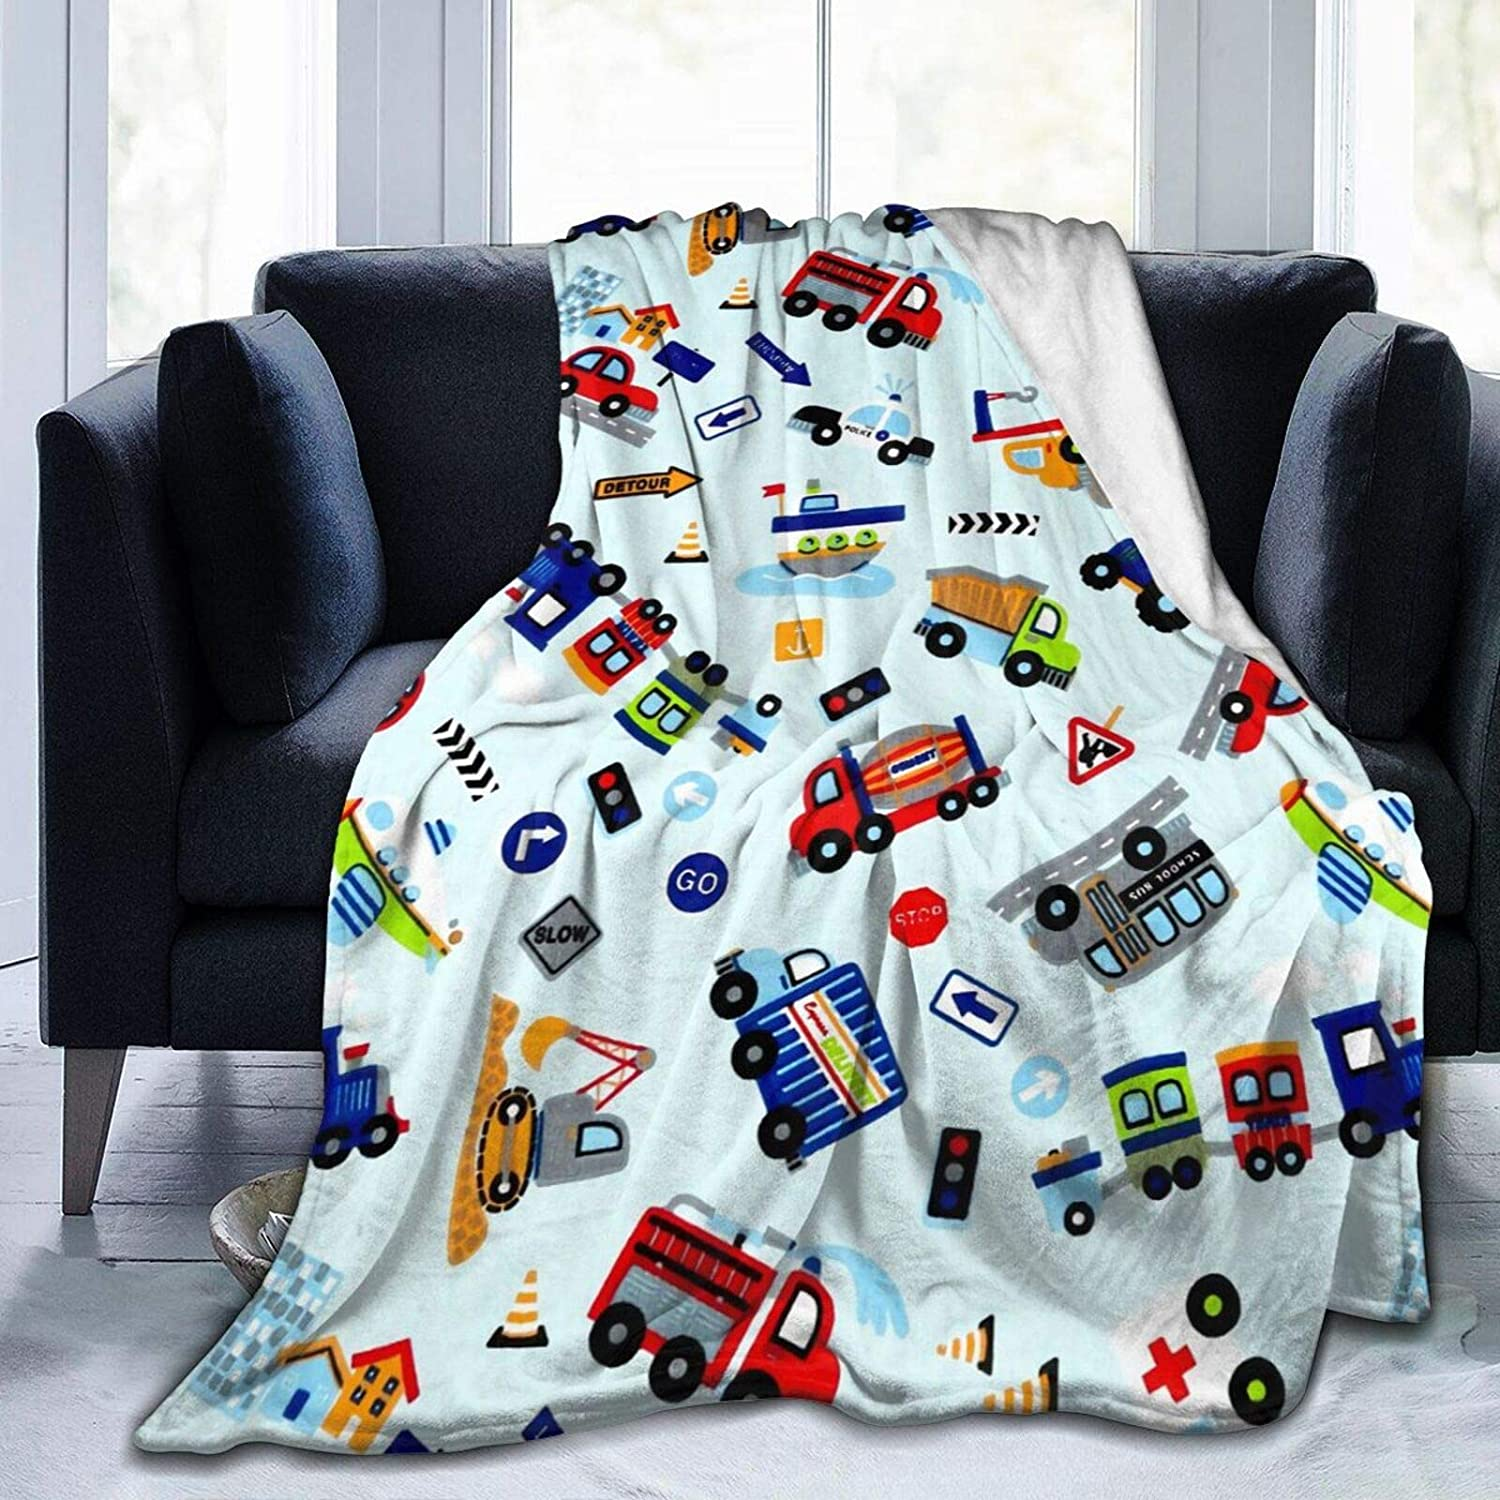 Youth Bold And Brash Funny Sloth Space Astronaut Flannel Fleece Blanket Kids 40 50 Inch Planets Rockets Soft Microfiber Cozy Lightweight Sofa Travel Blanket for Baby